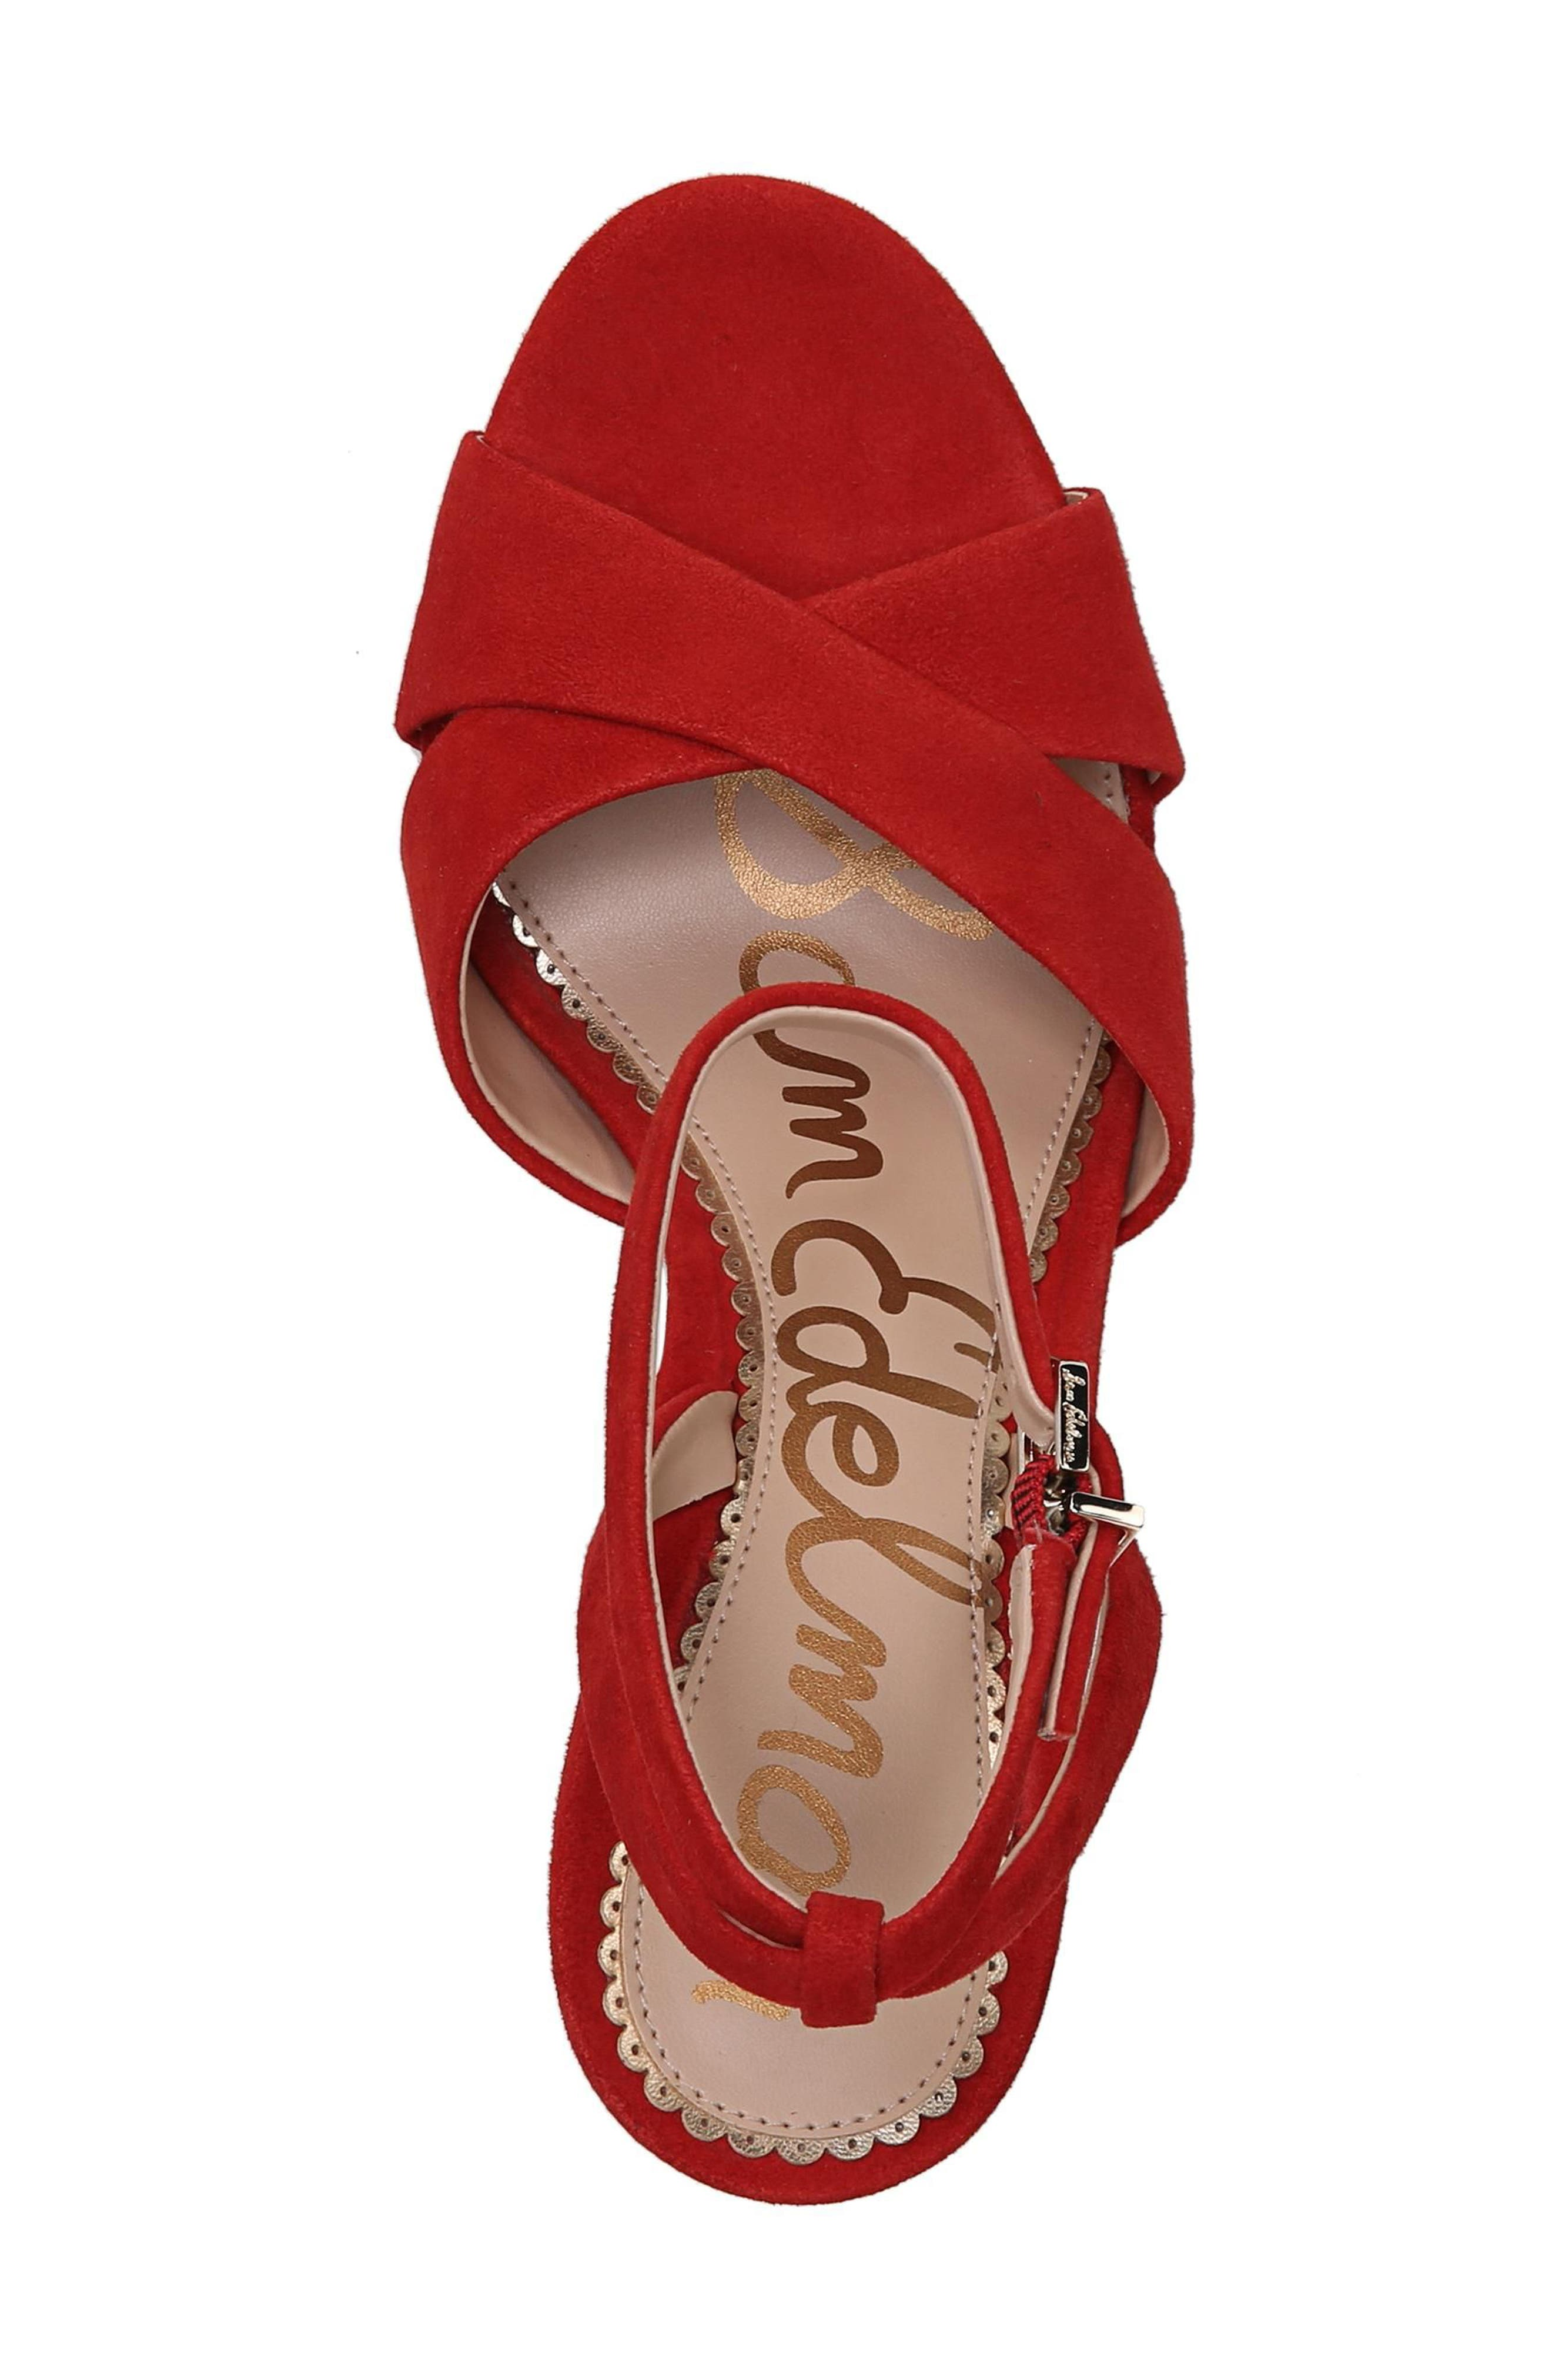 Aly Ankle Strap Sandal,                             Alternate thumbnail 5, color,                             Candy Red Leather